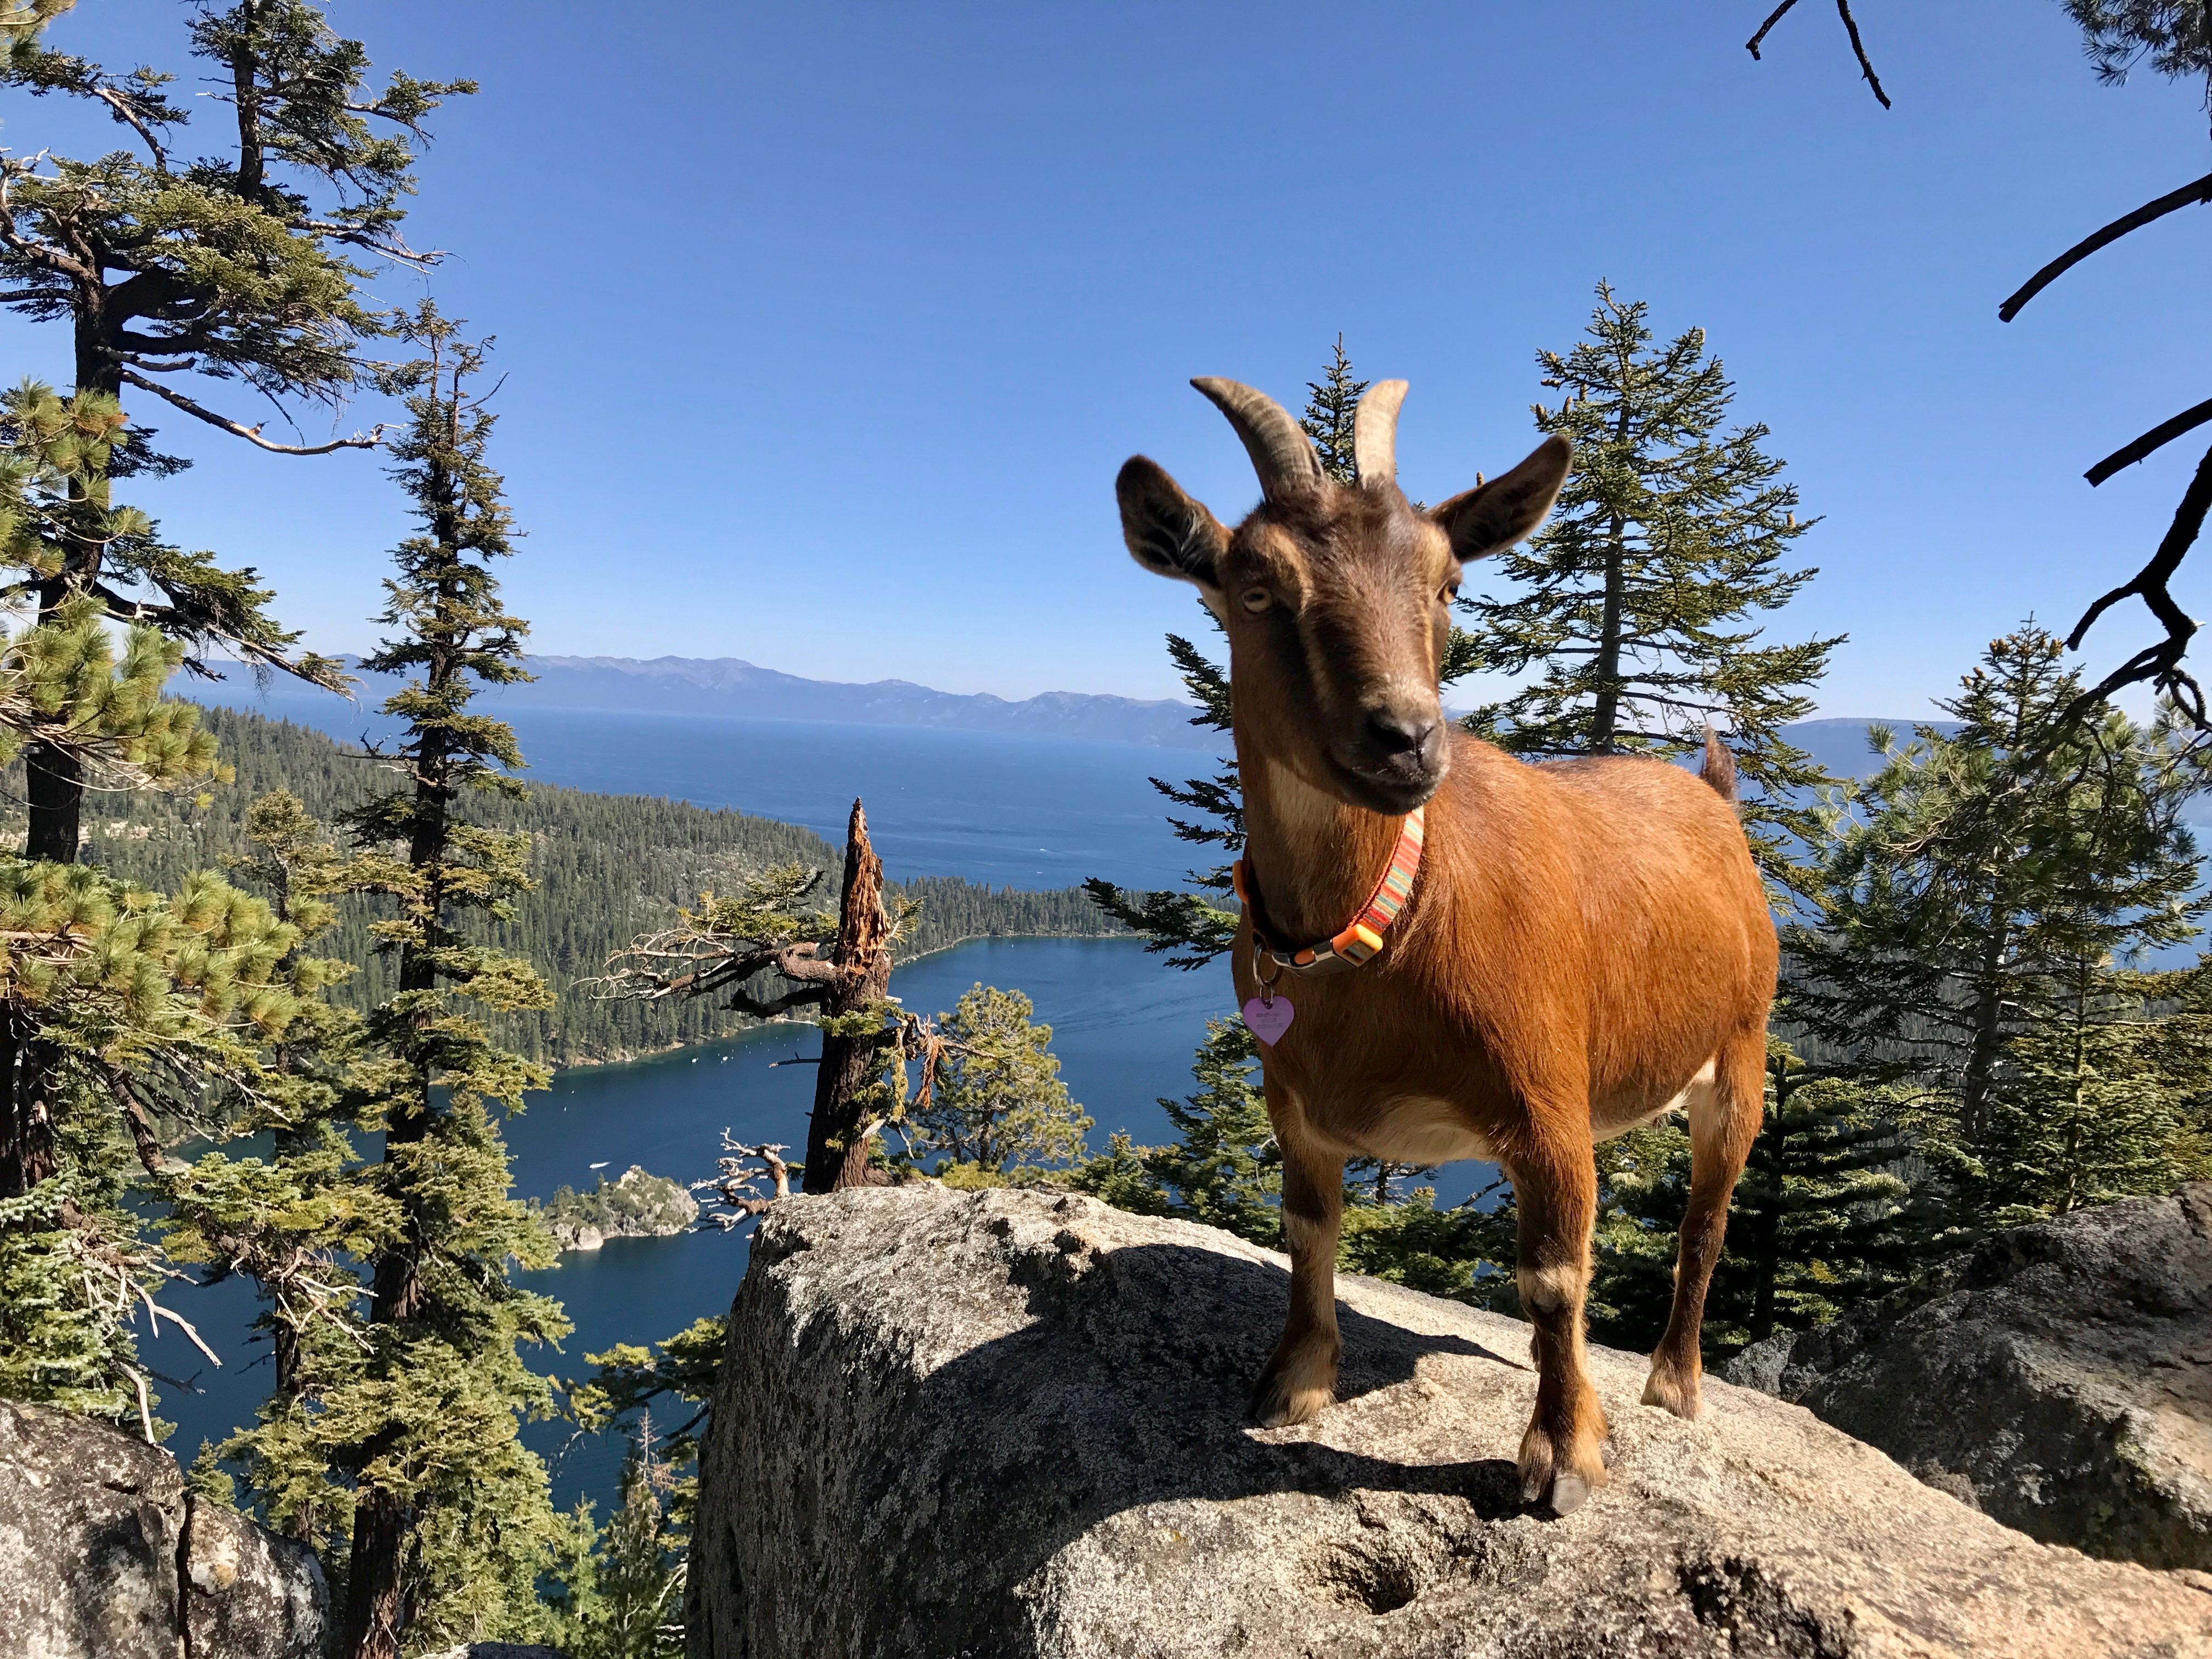 A goat stands on a viewpoint overlooking a sprawling lake.